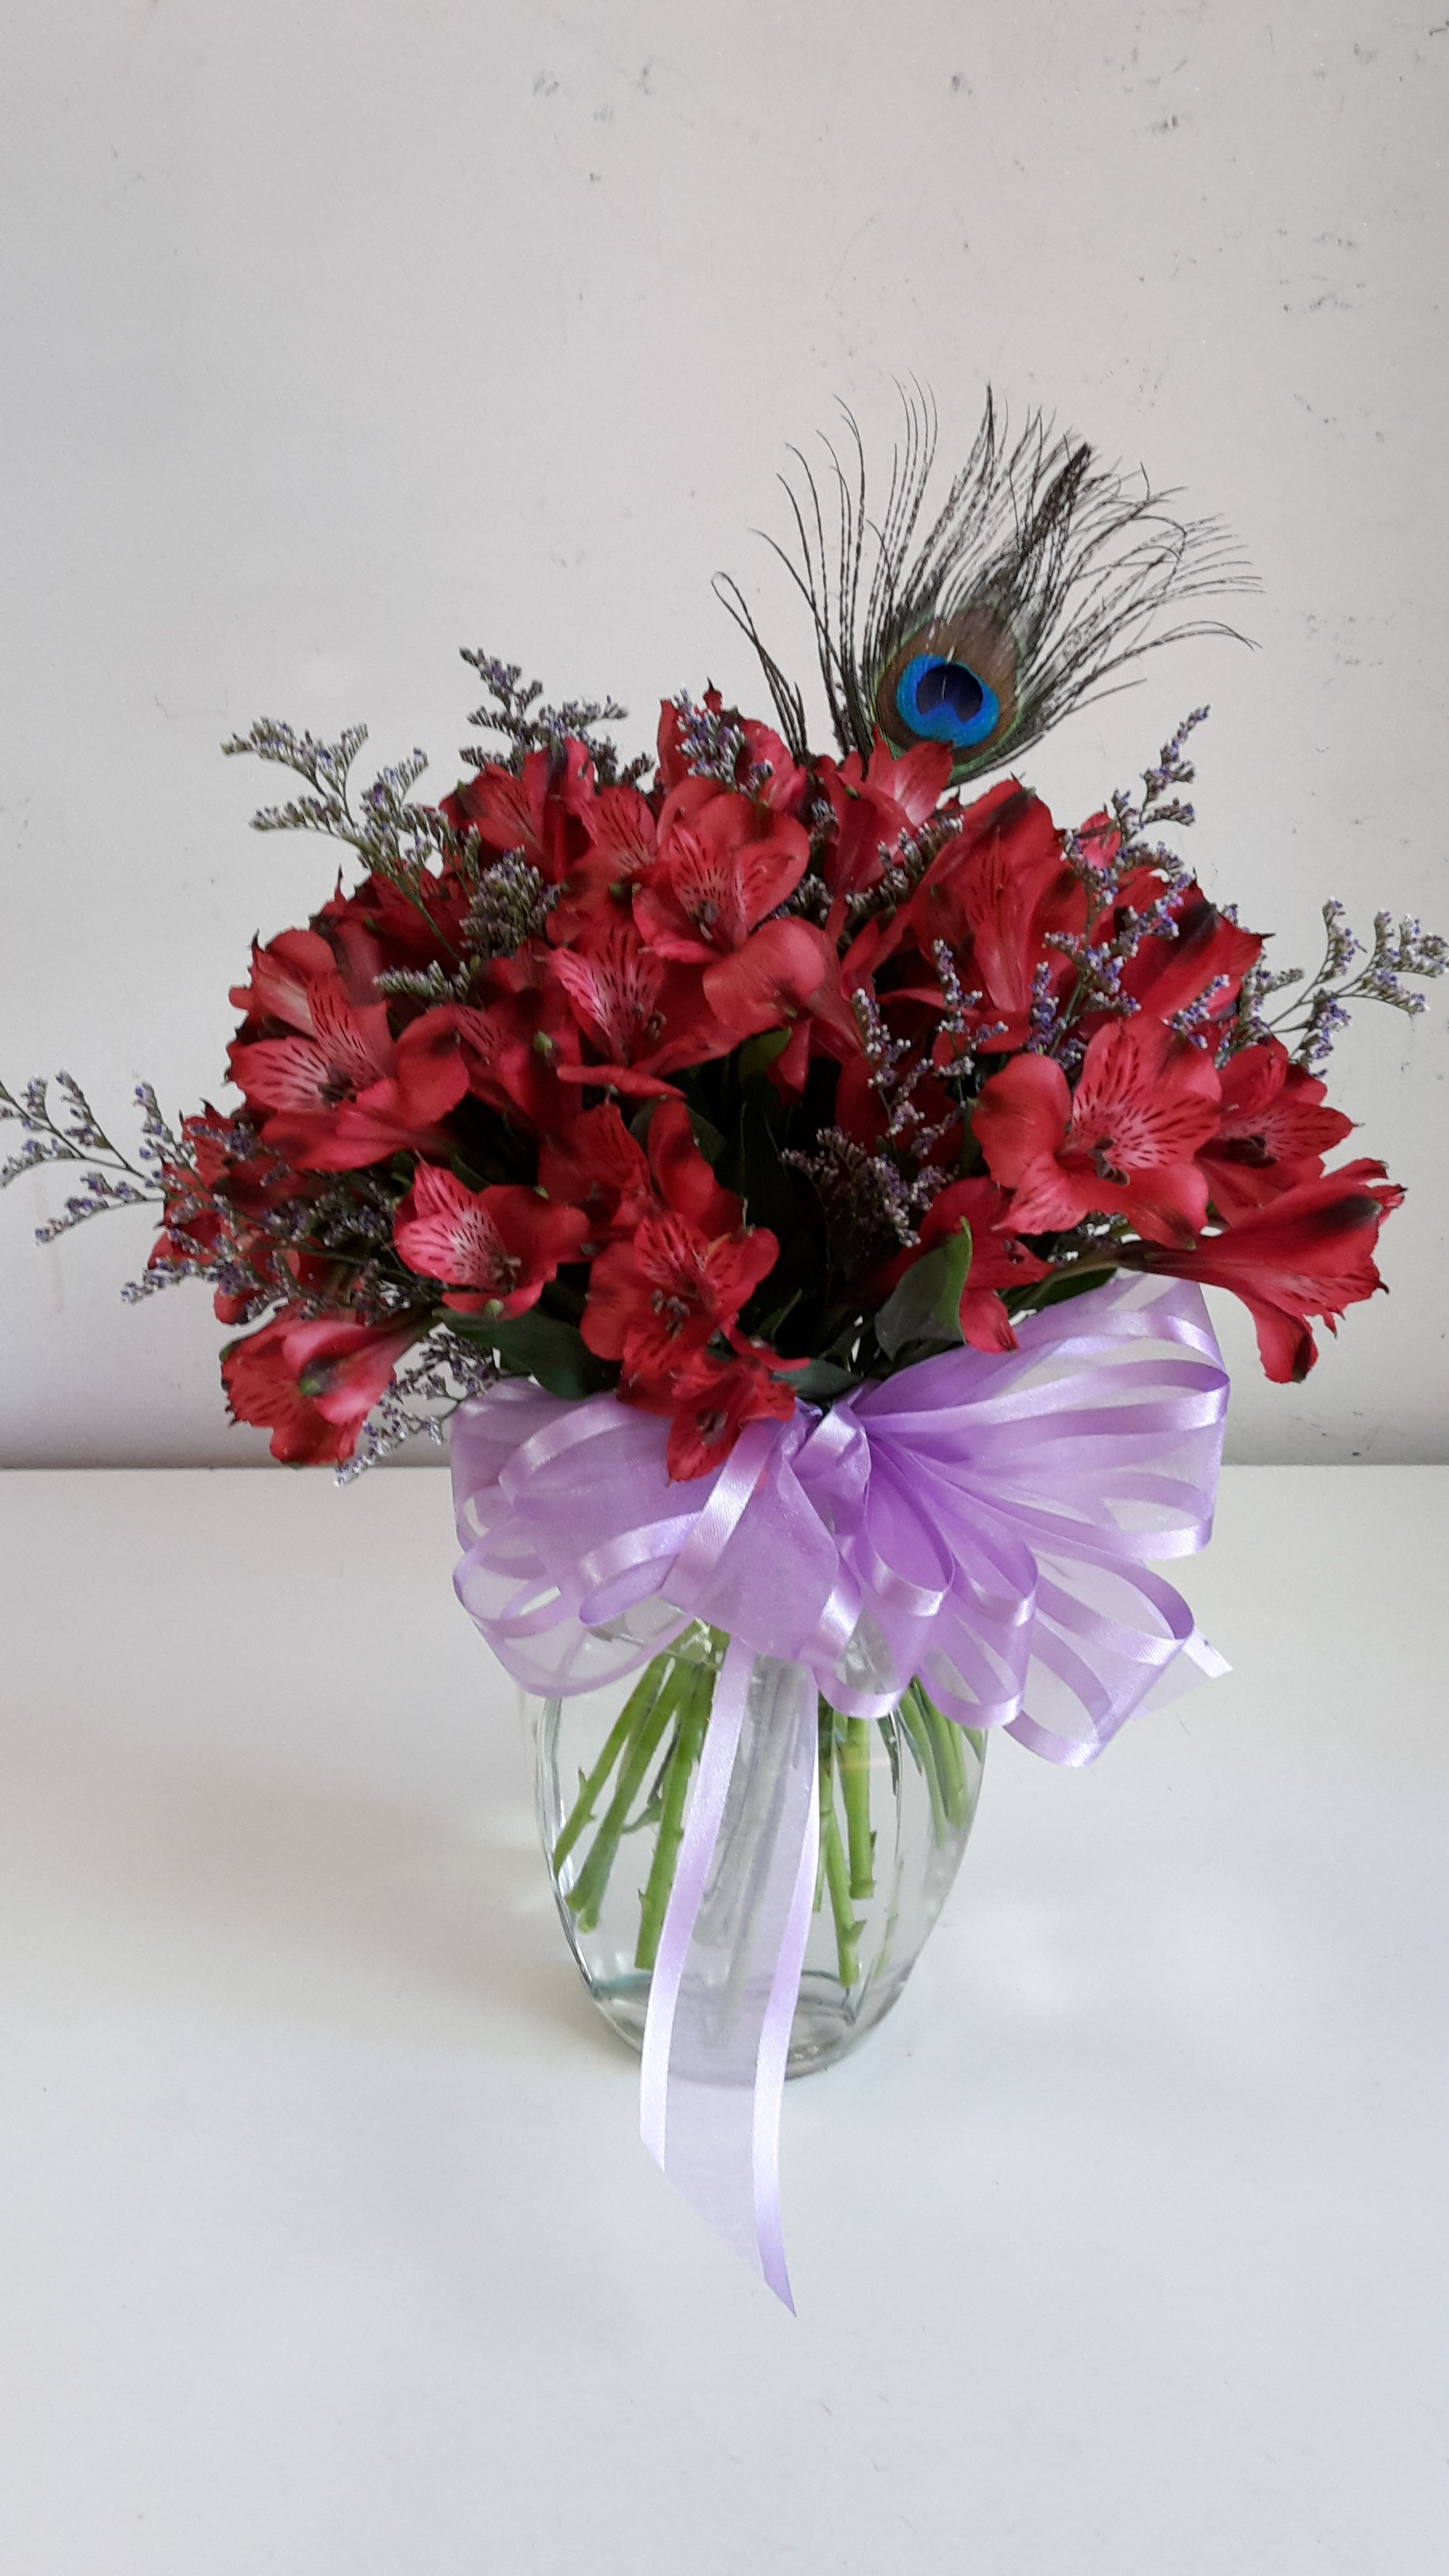 Next Day Delivery ADD TO FAVORITES Peacock Alstroemeria